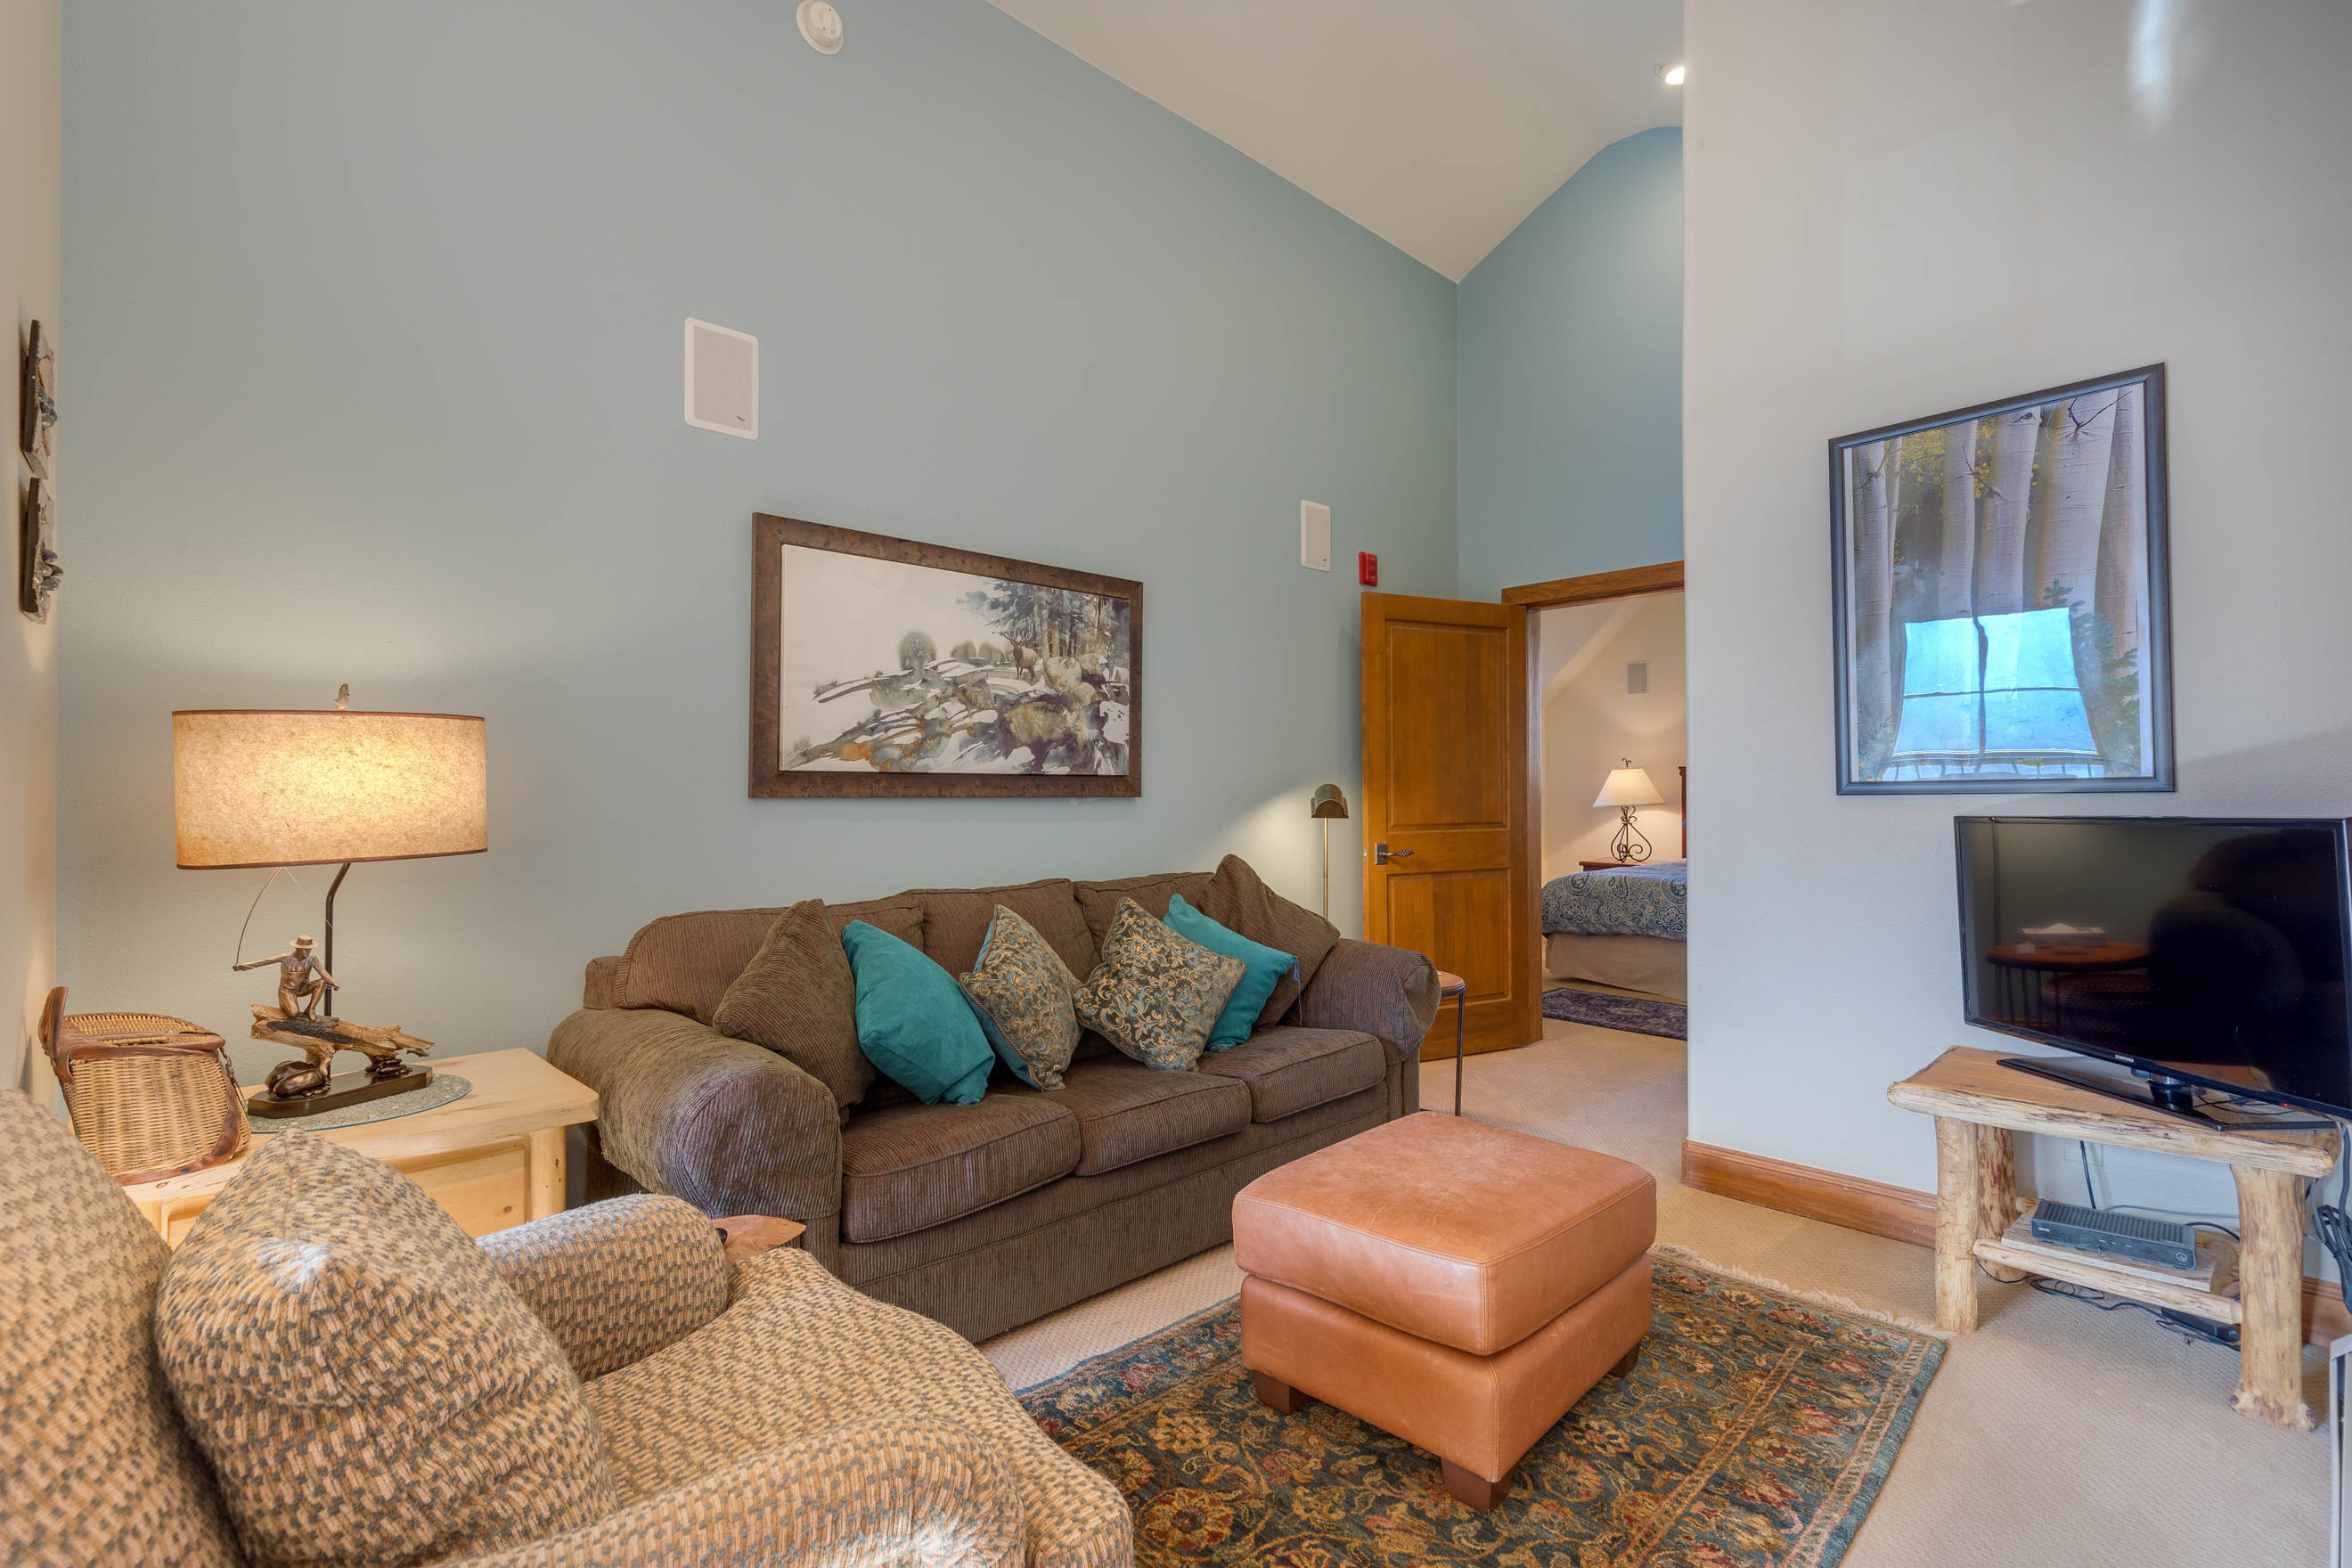 The upstairs loft features a queen-sized sleeper sofa and a flat screen TV.